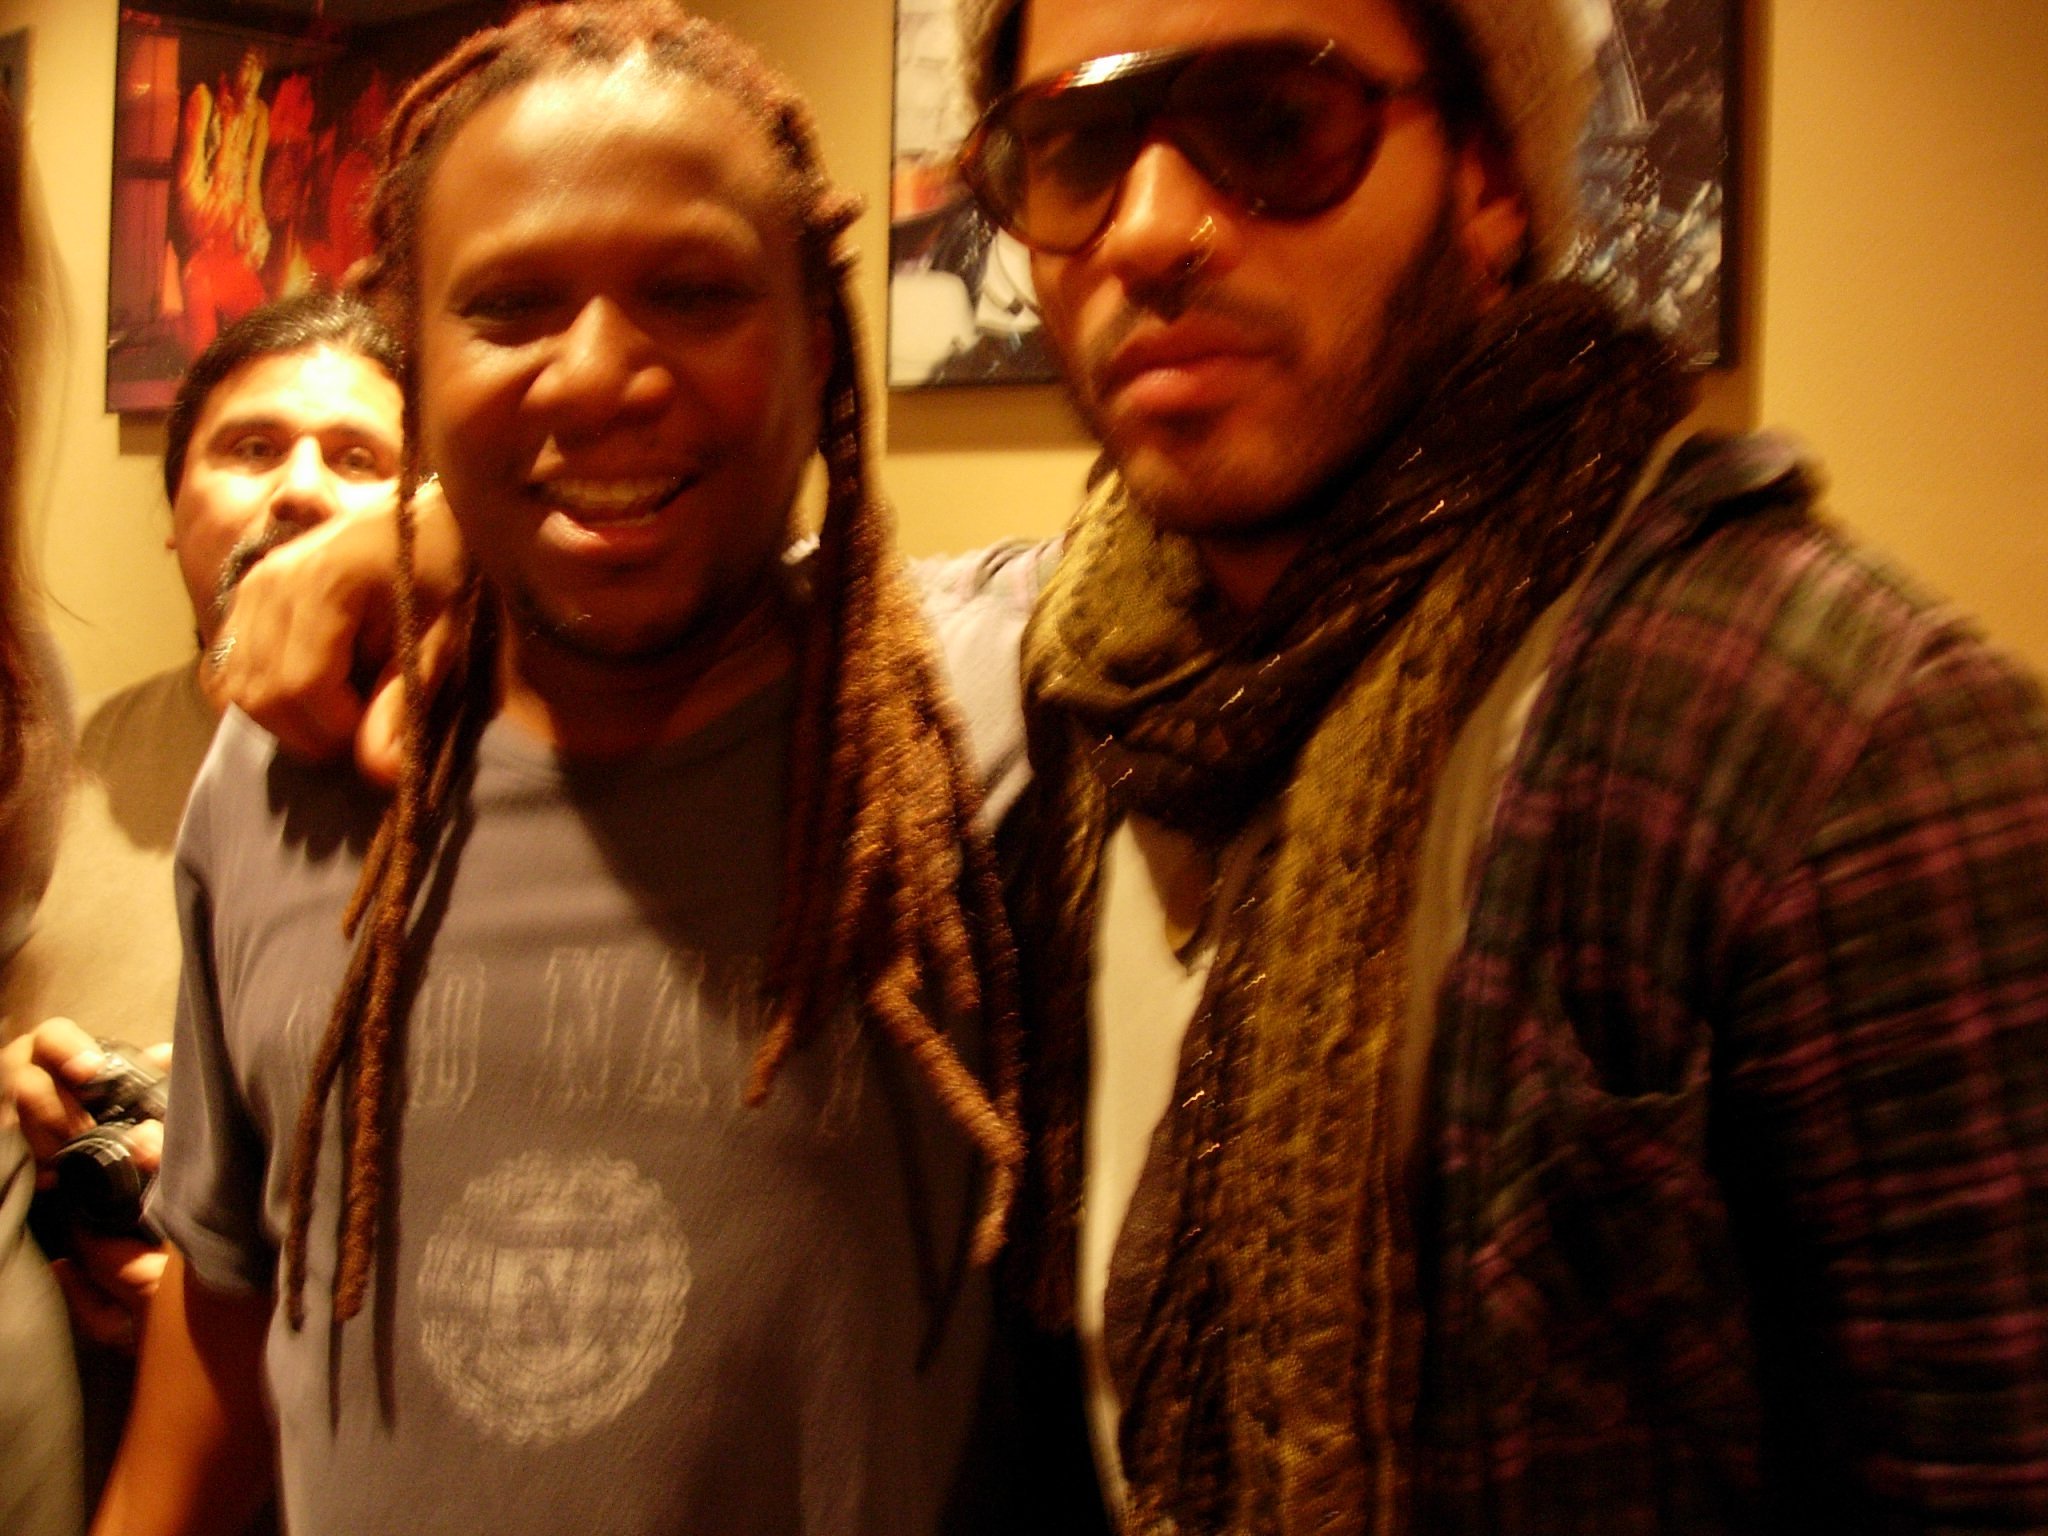 Ted and Lenny Kravitz